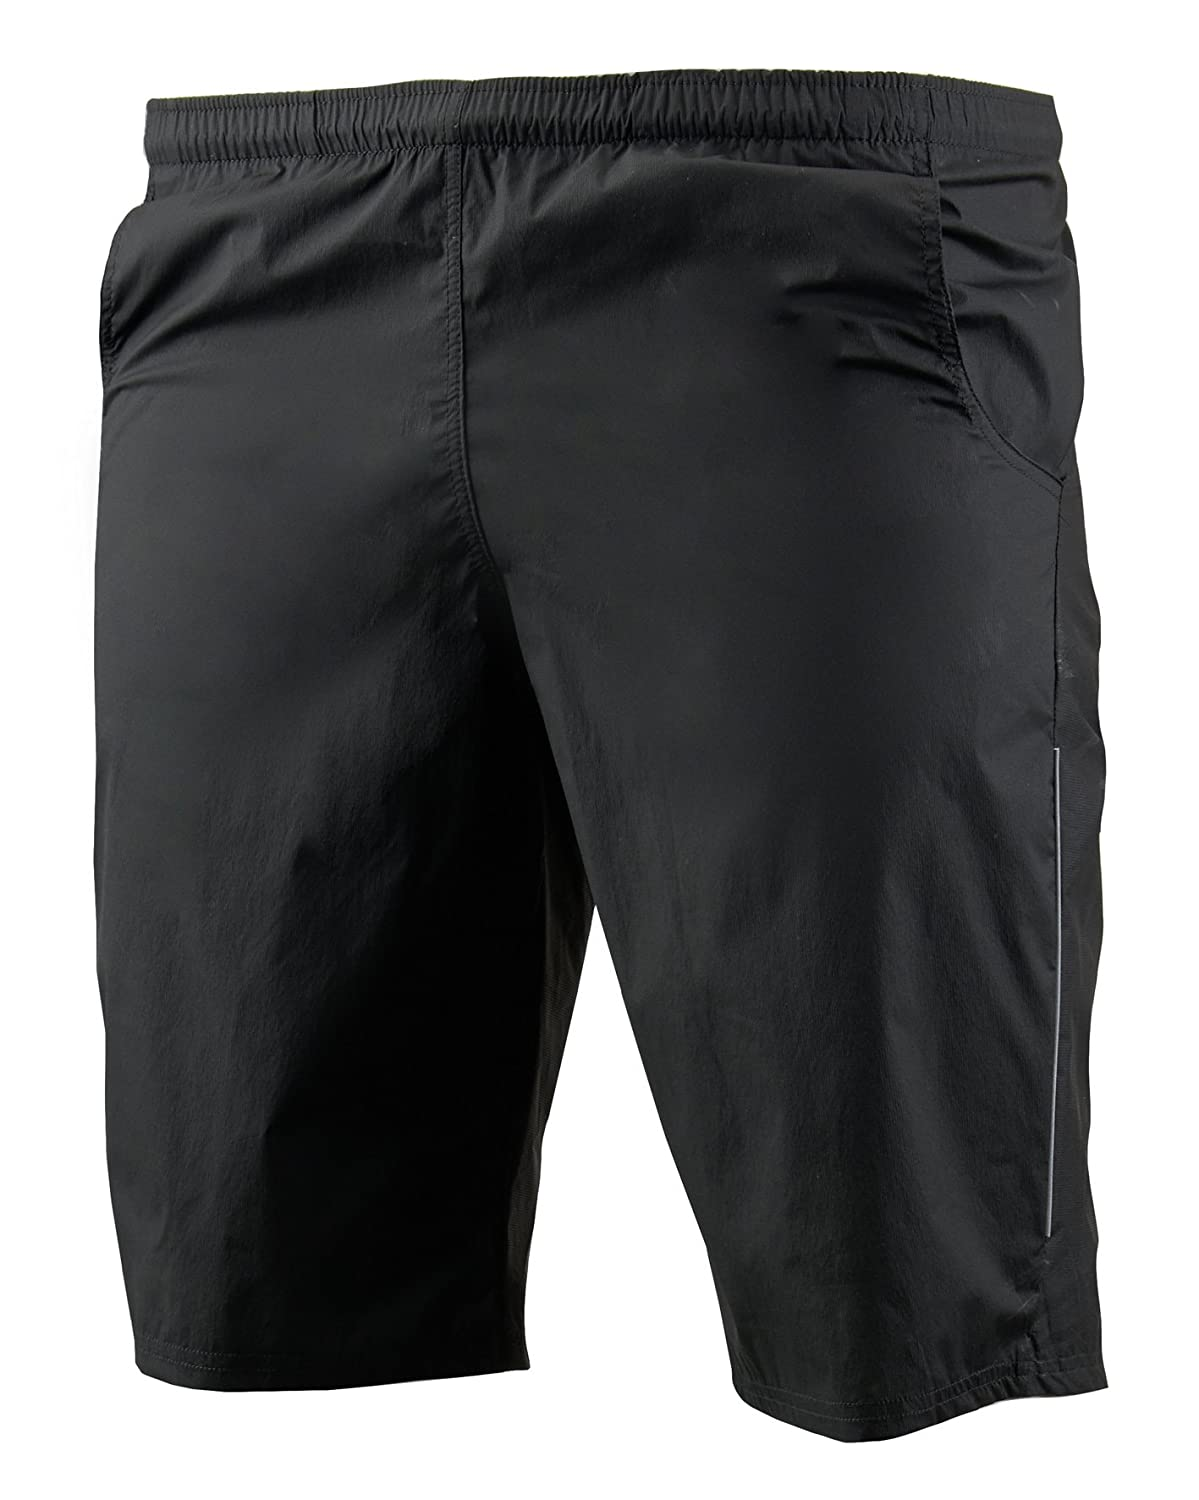 Thoni mara unisex Laufhose Speed-Trail-Short (S)